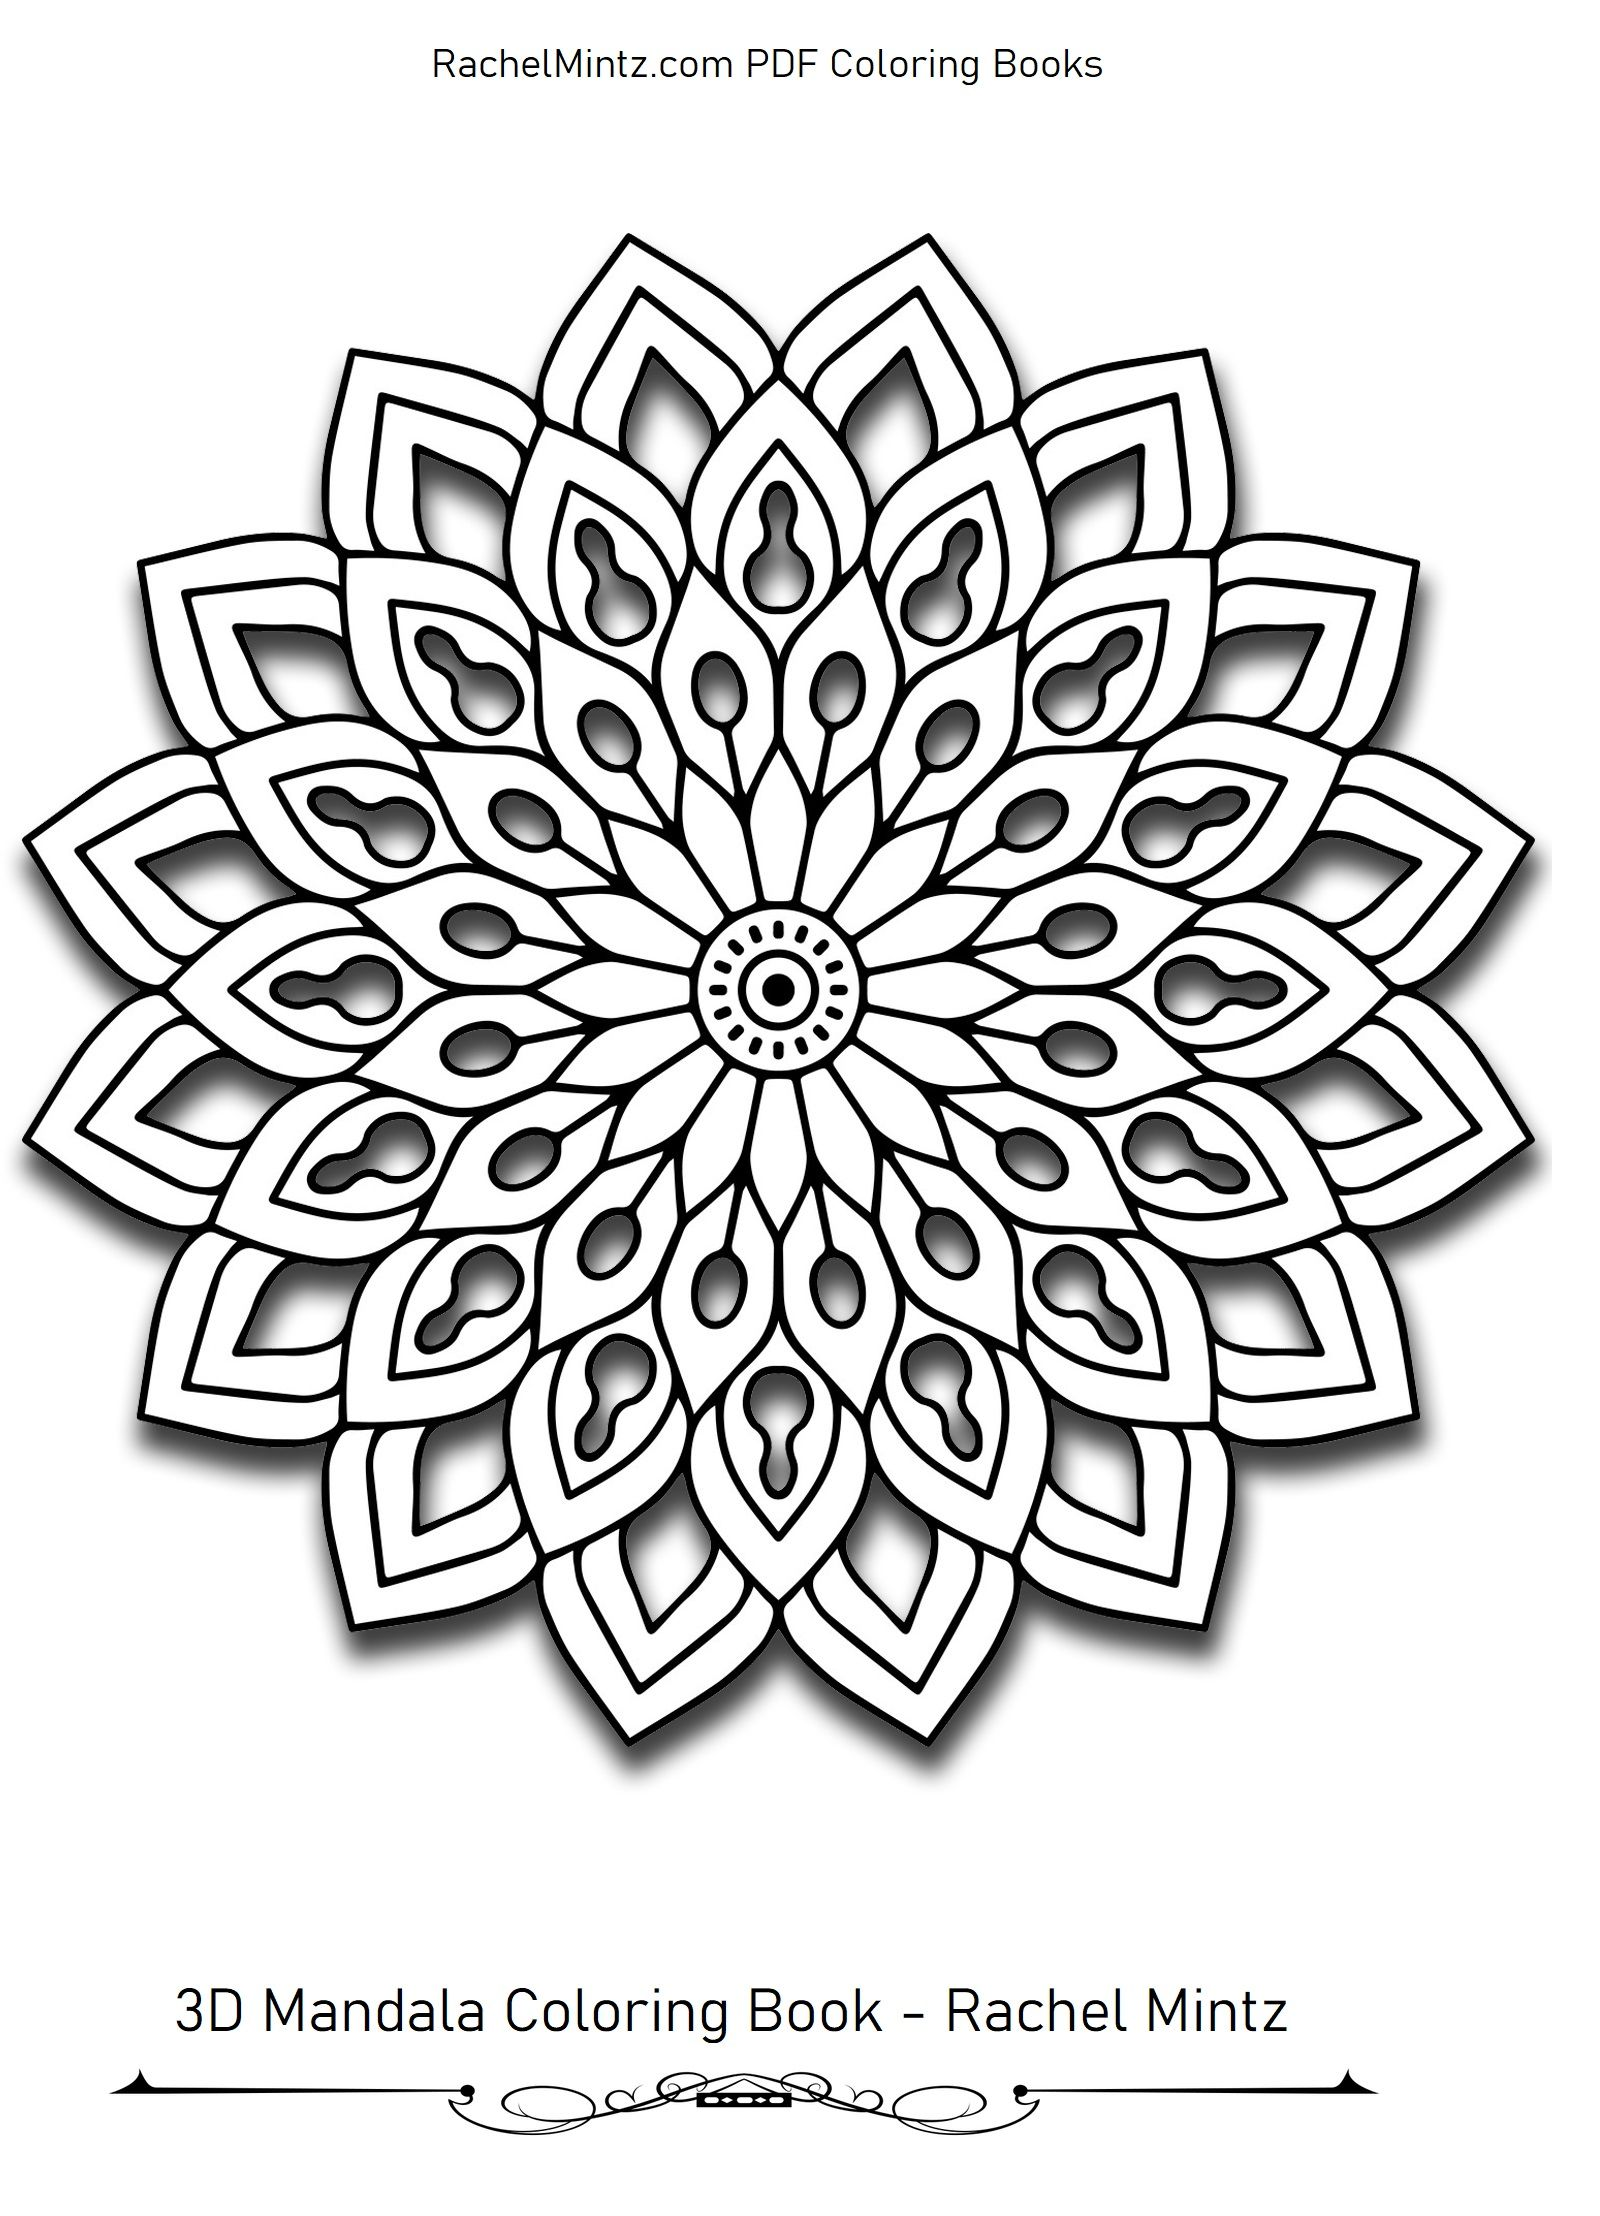 3d Patterns Coloring Pages Pdf Book Coloring Books Pattern Coloring Pages Mandala Coloring